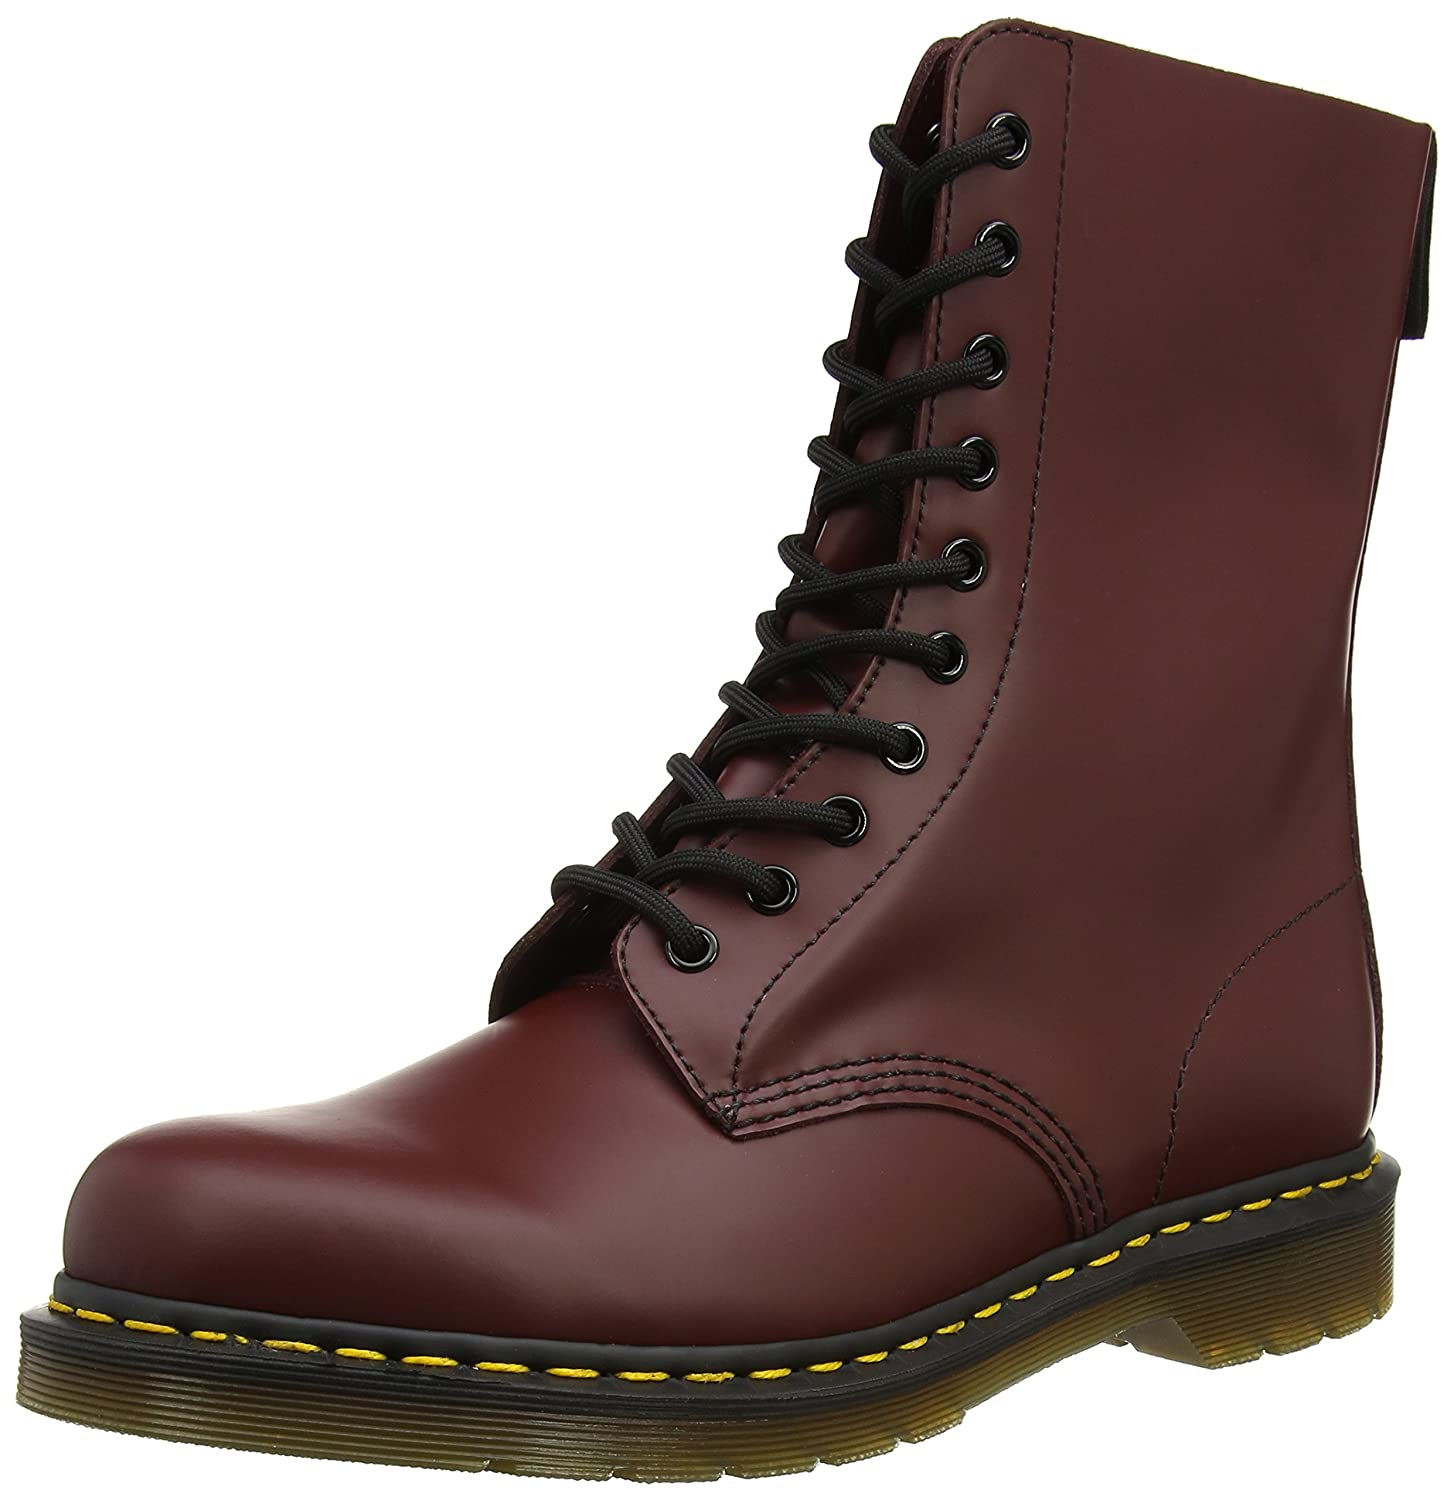 Cherry Red Smooth Dr. Martens Original 10 Eye Boot